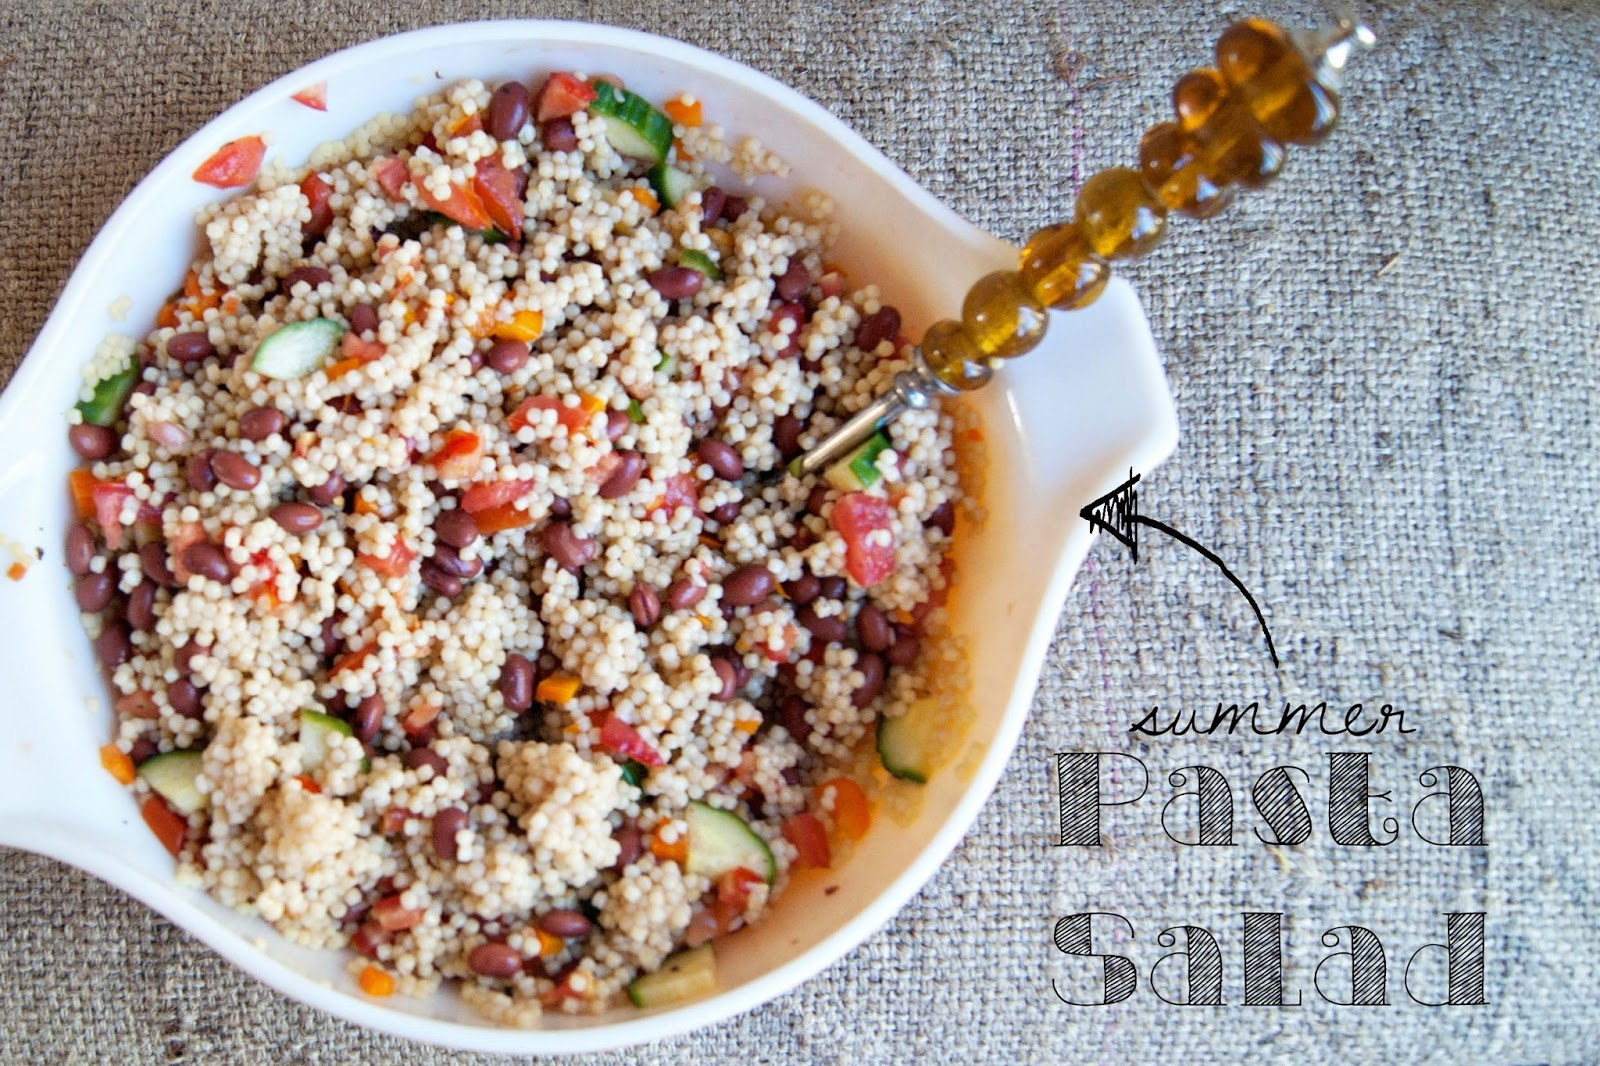 Summer Pasta Salad {recipe} | Averie Lane: Summer Pasta Salad {recipe}